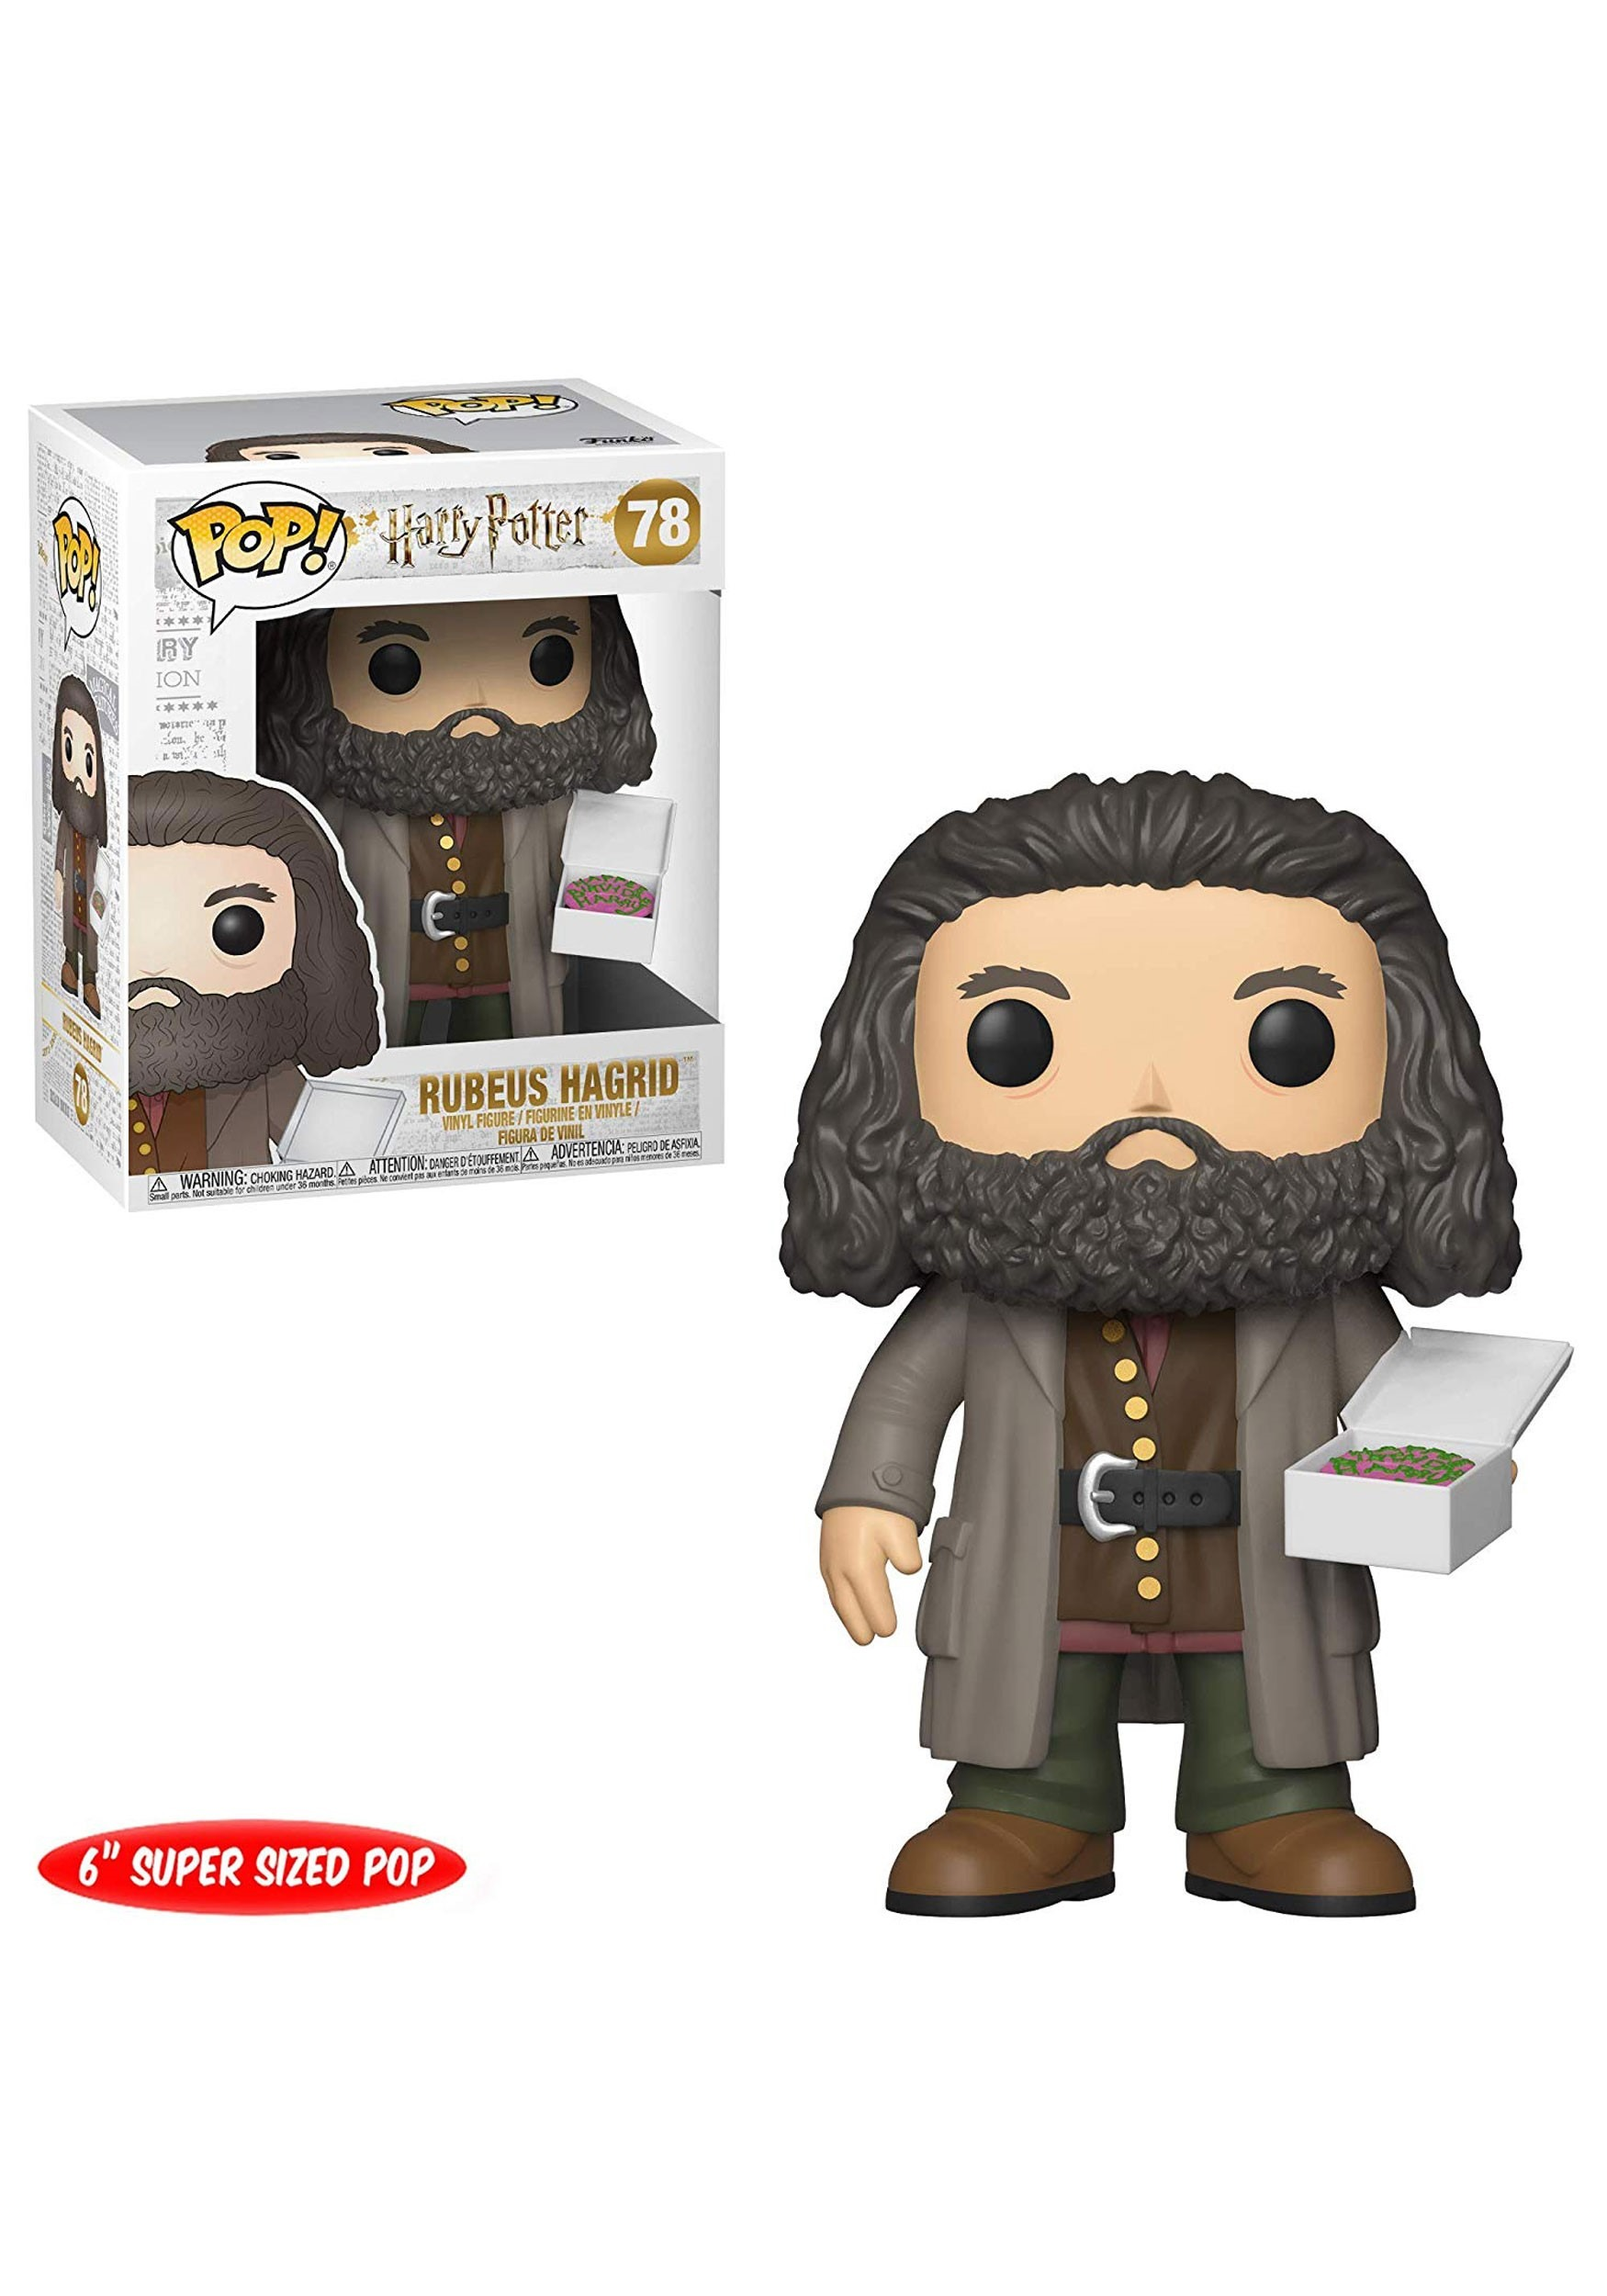 HARRY POTTER -  POP! VINYL FIGURE OF HAGRID WITH CAKE (6 INCH) 78